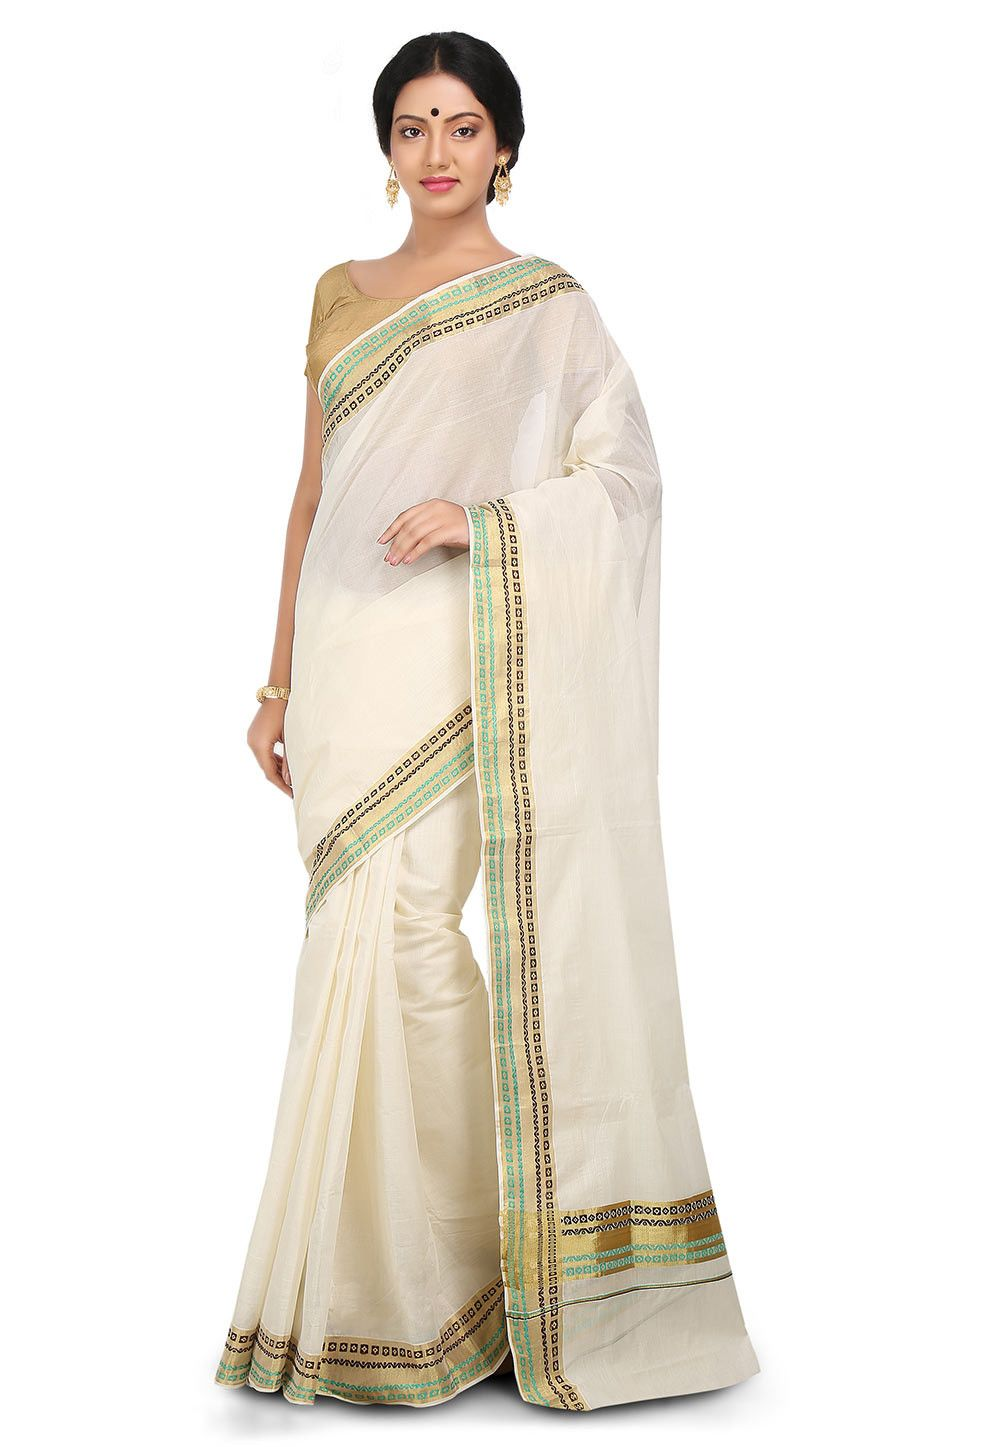 Off white tussar silk saree this traditional attire is woven in zari available with an off white